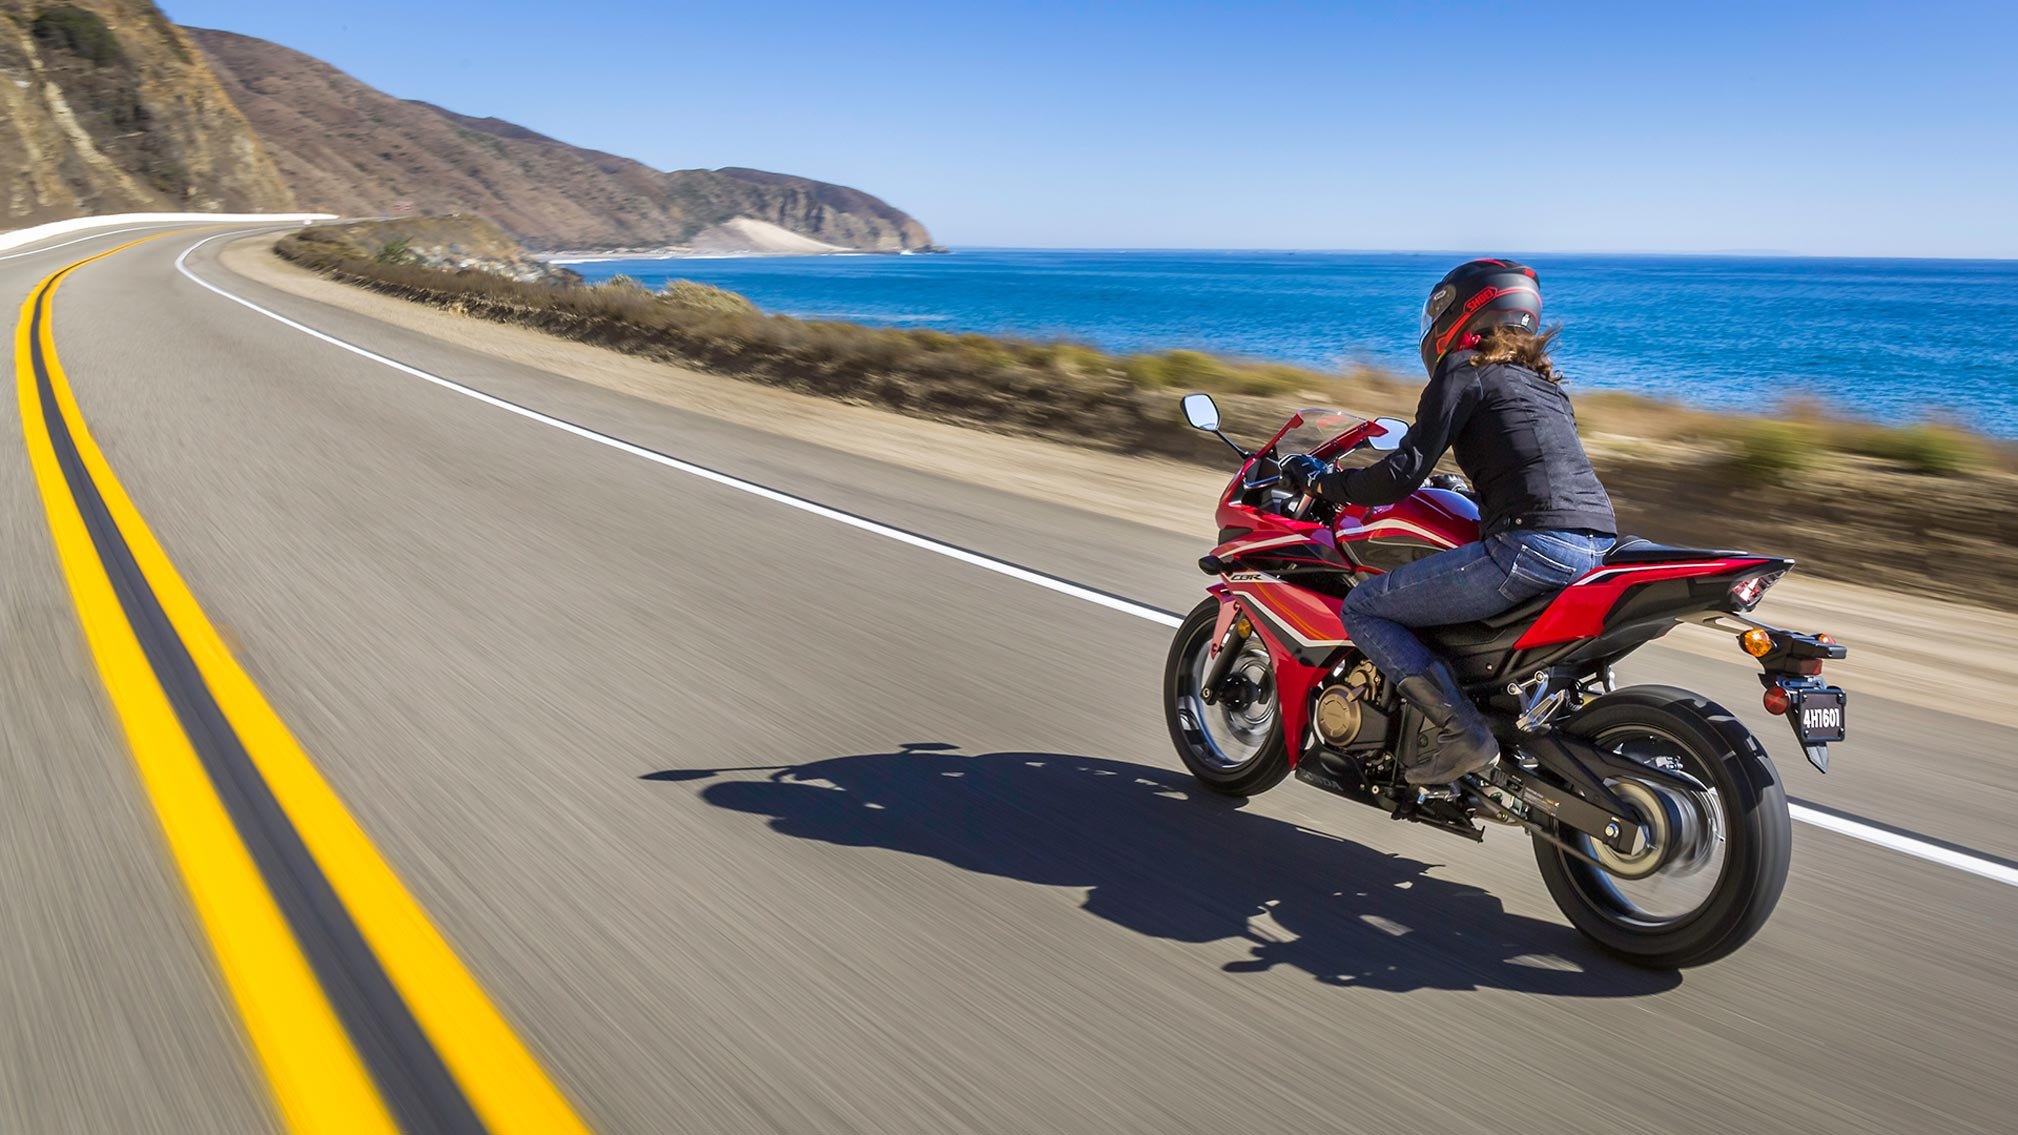 2018 Honda Cbr500r Review Totalmotorcycle